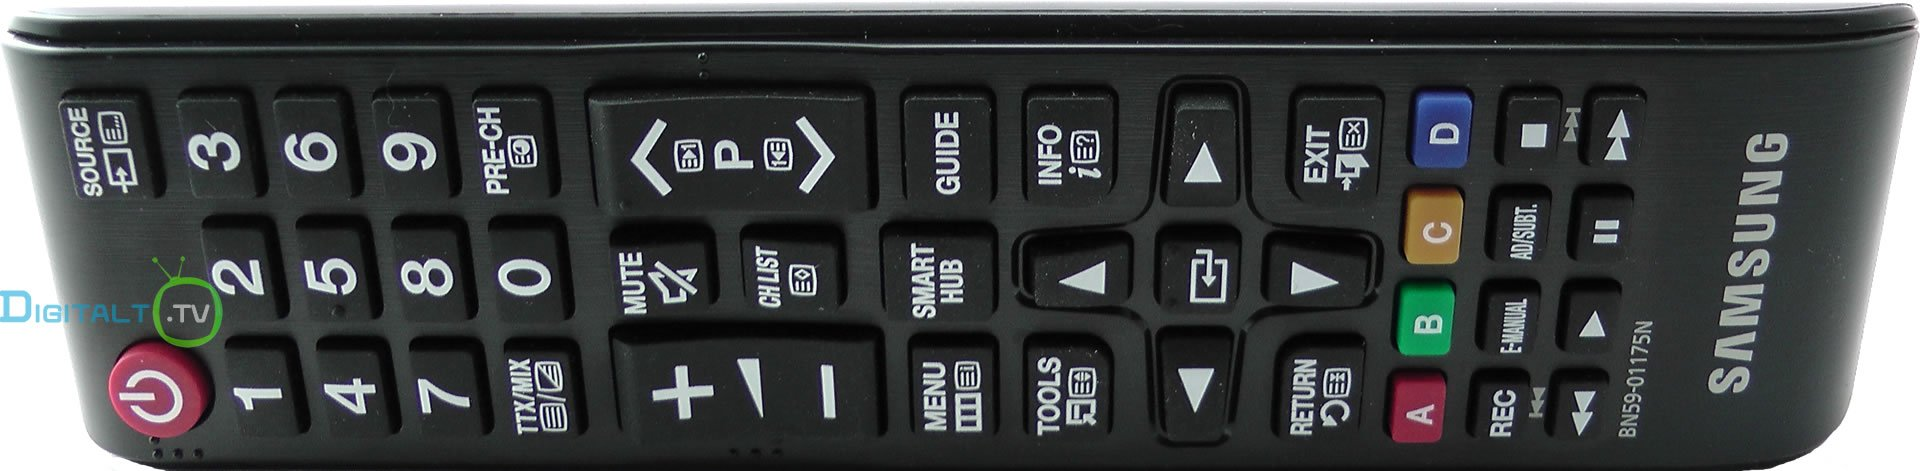 samsung remote traditionel 2015